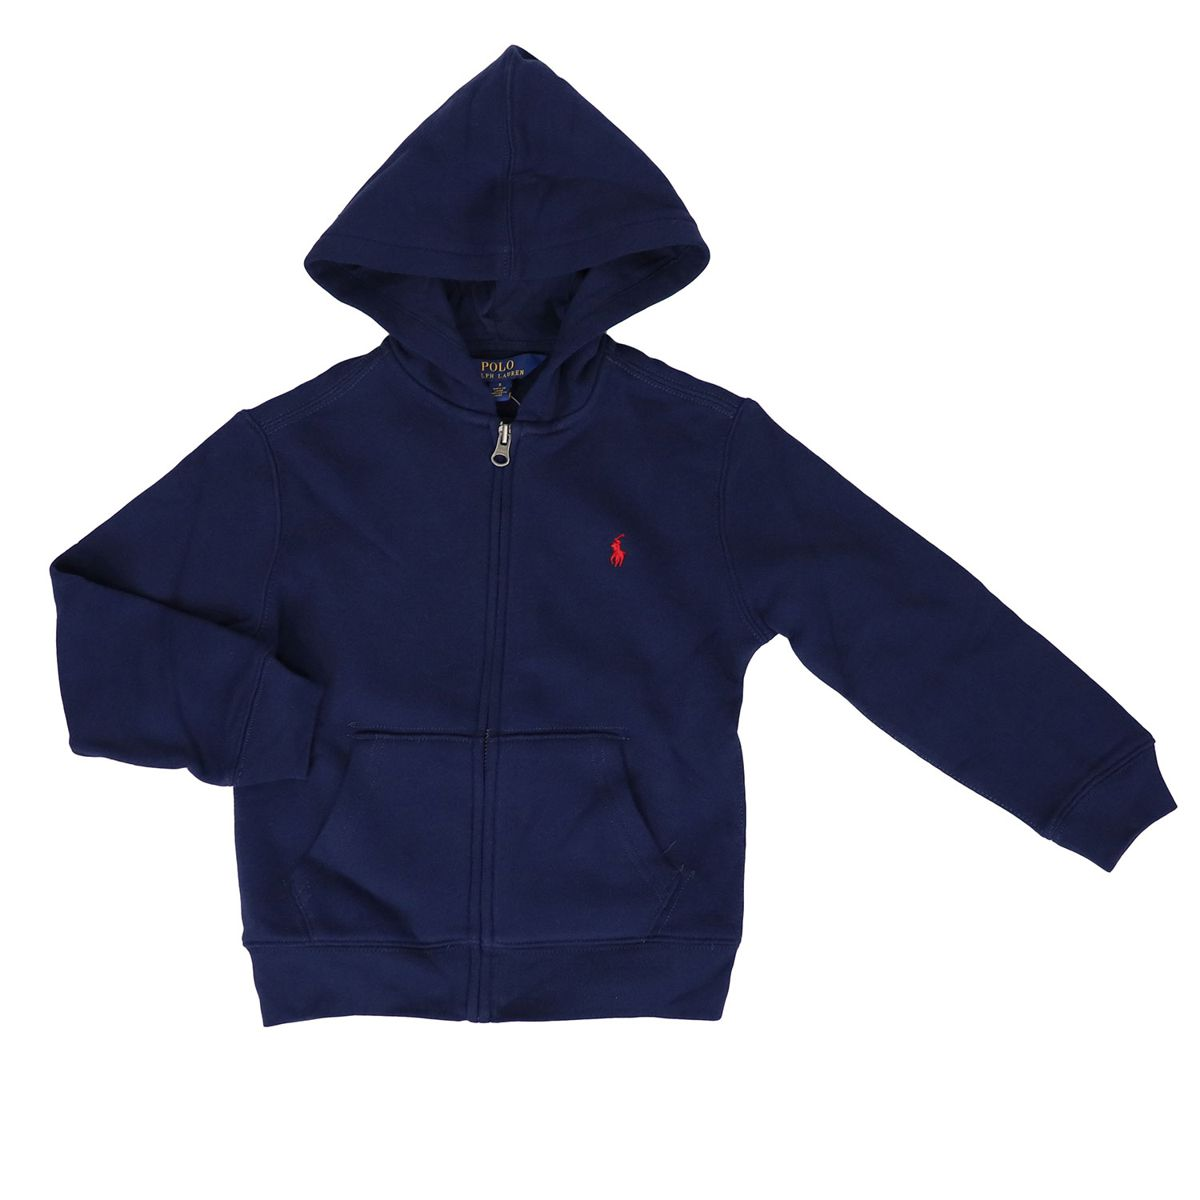 Full zip hooded sweatshirt Blue Polo Ralph Lauren